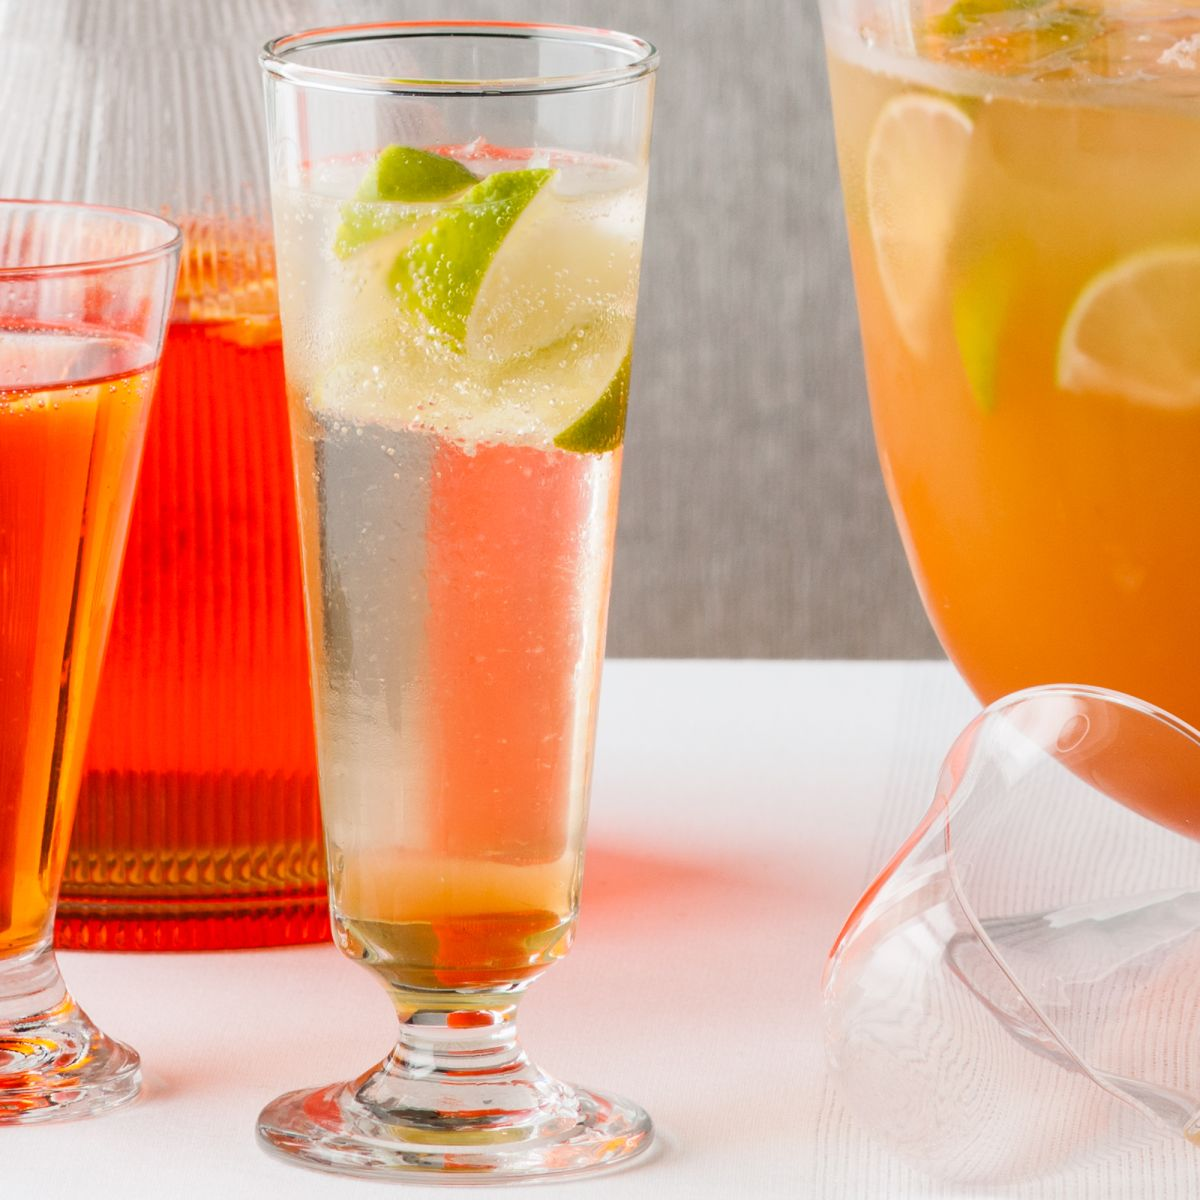 Enjoy a sophisticated cocktail with this gorgeous G&Tea cocktail twist